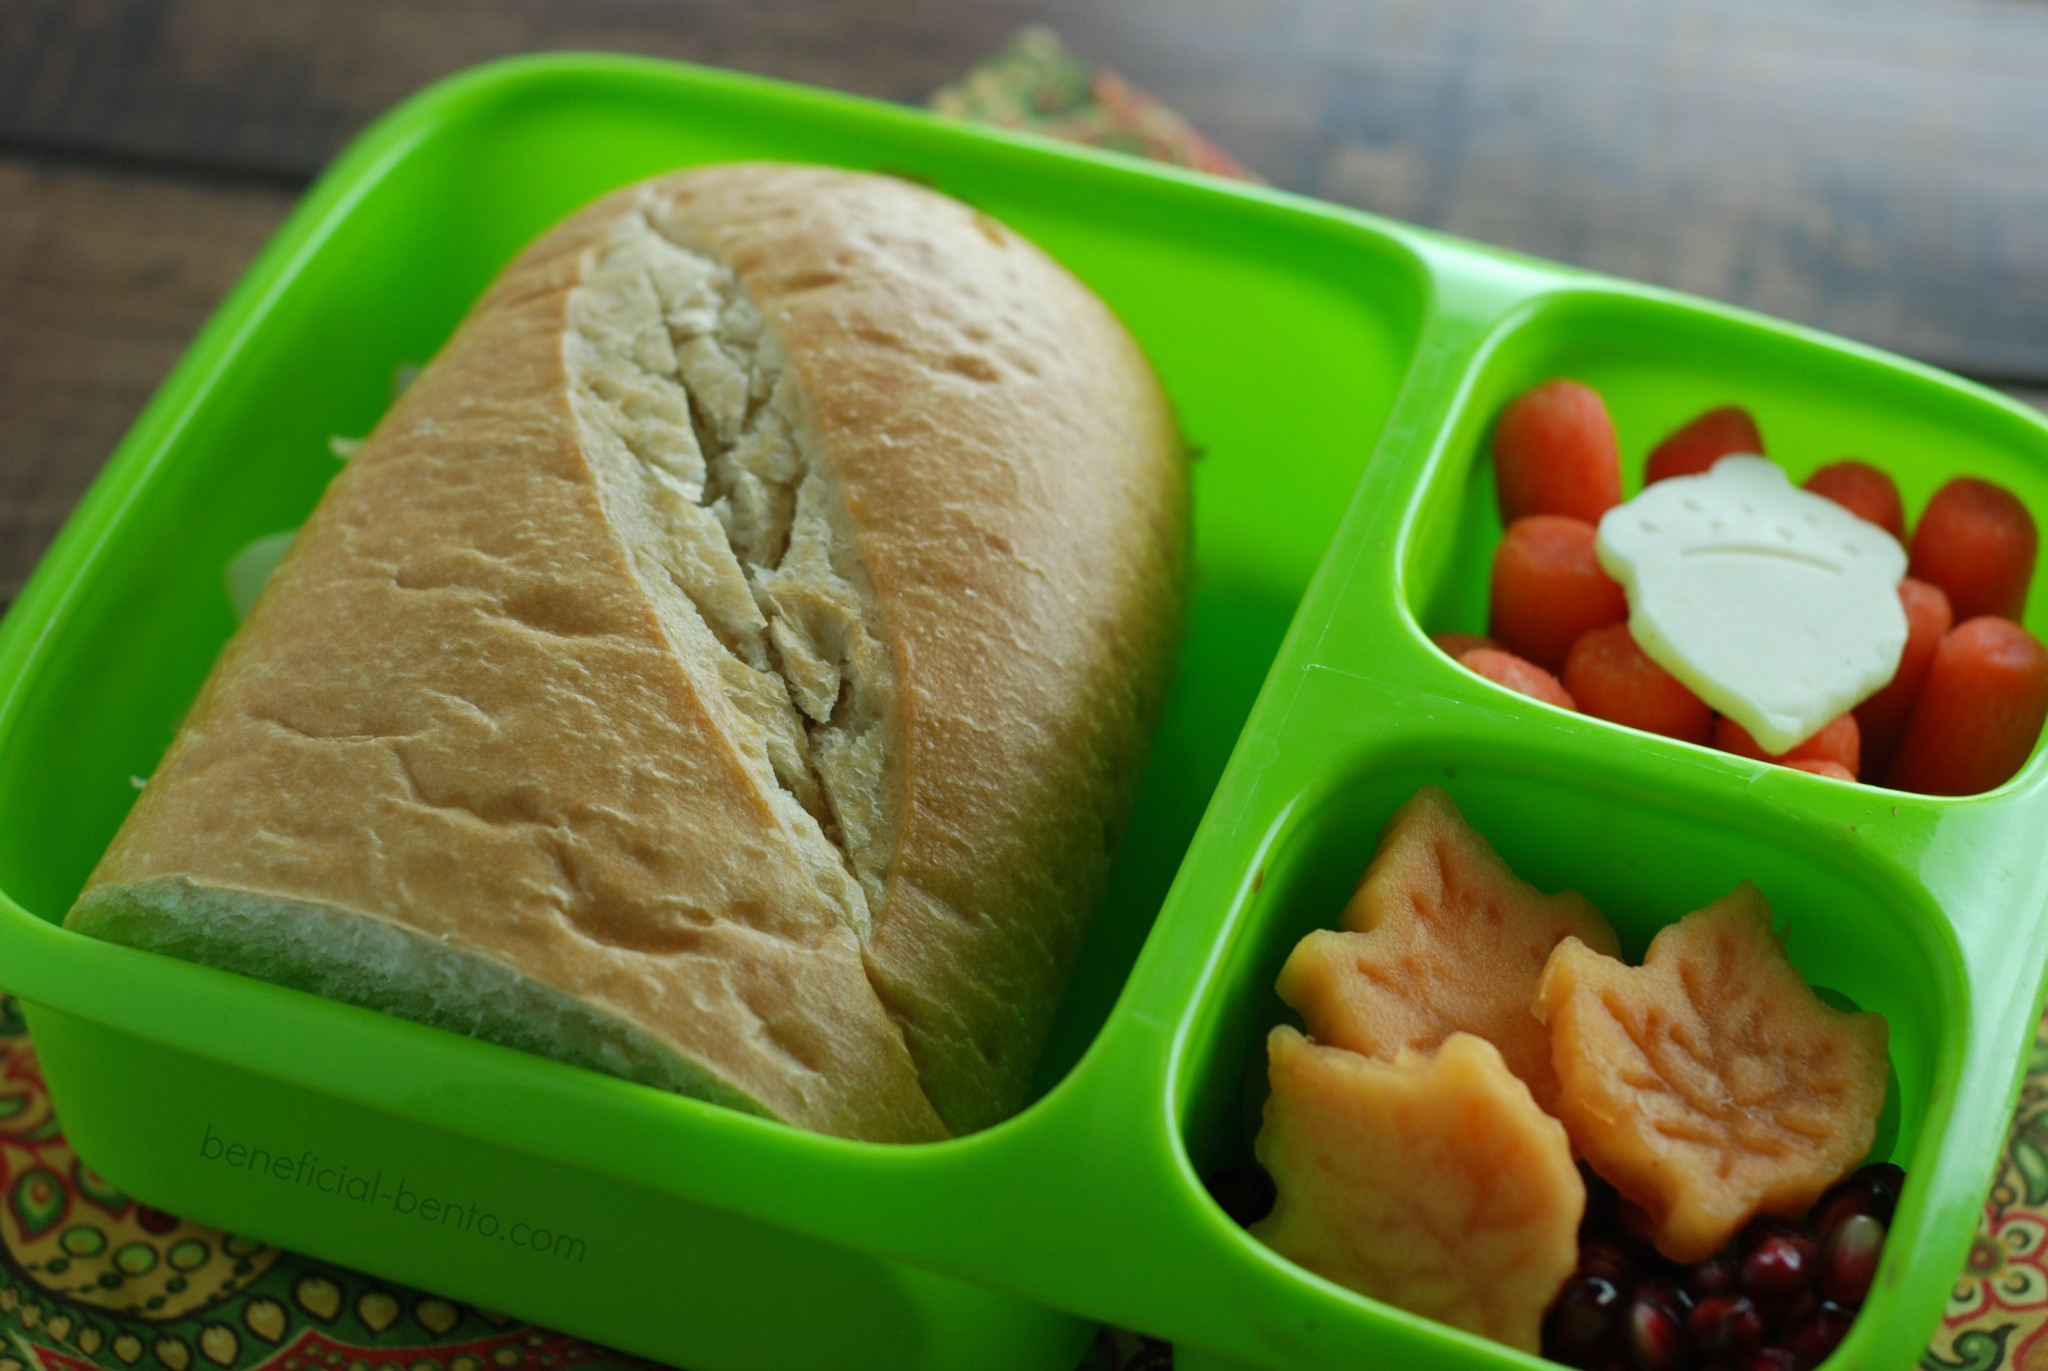 my Goodbyn Hero was the perfect box for this hearty sandwich!